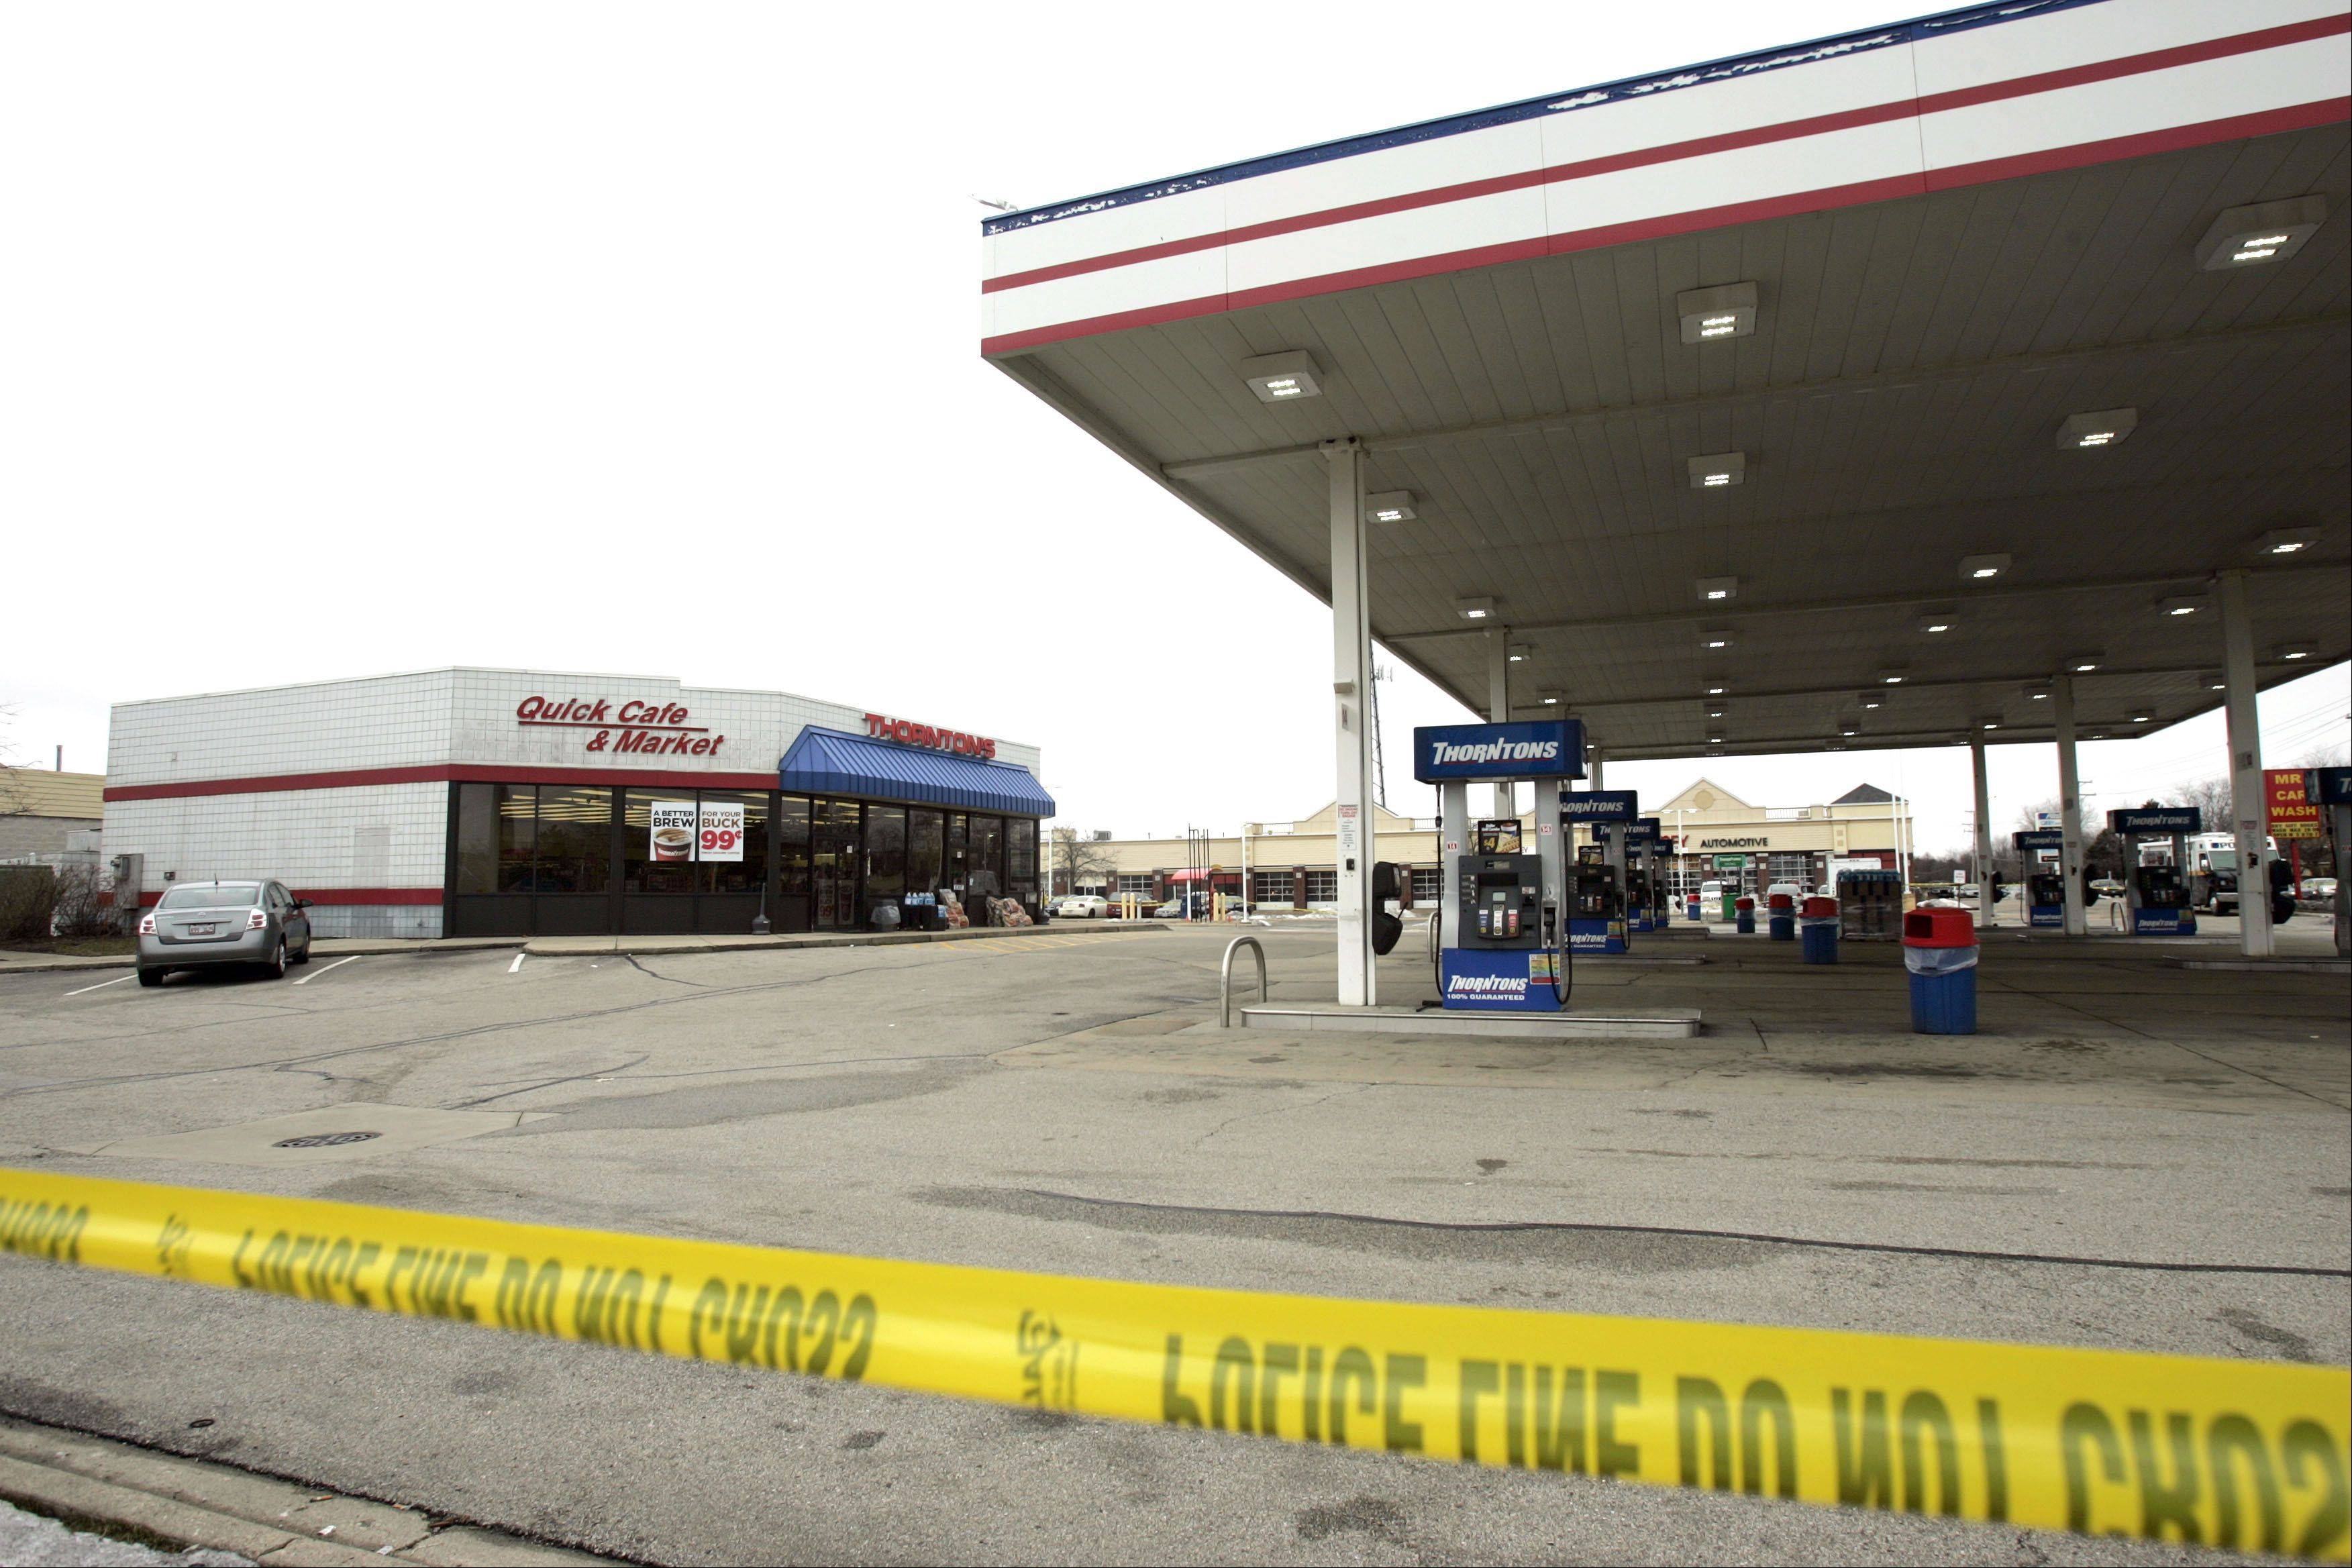 Police tape surrounds the Streamwood police as they work the scene where a gas station clerk was stabbed and killed early Saturday morning in Streamwood, police said.